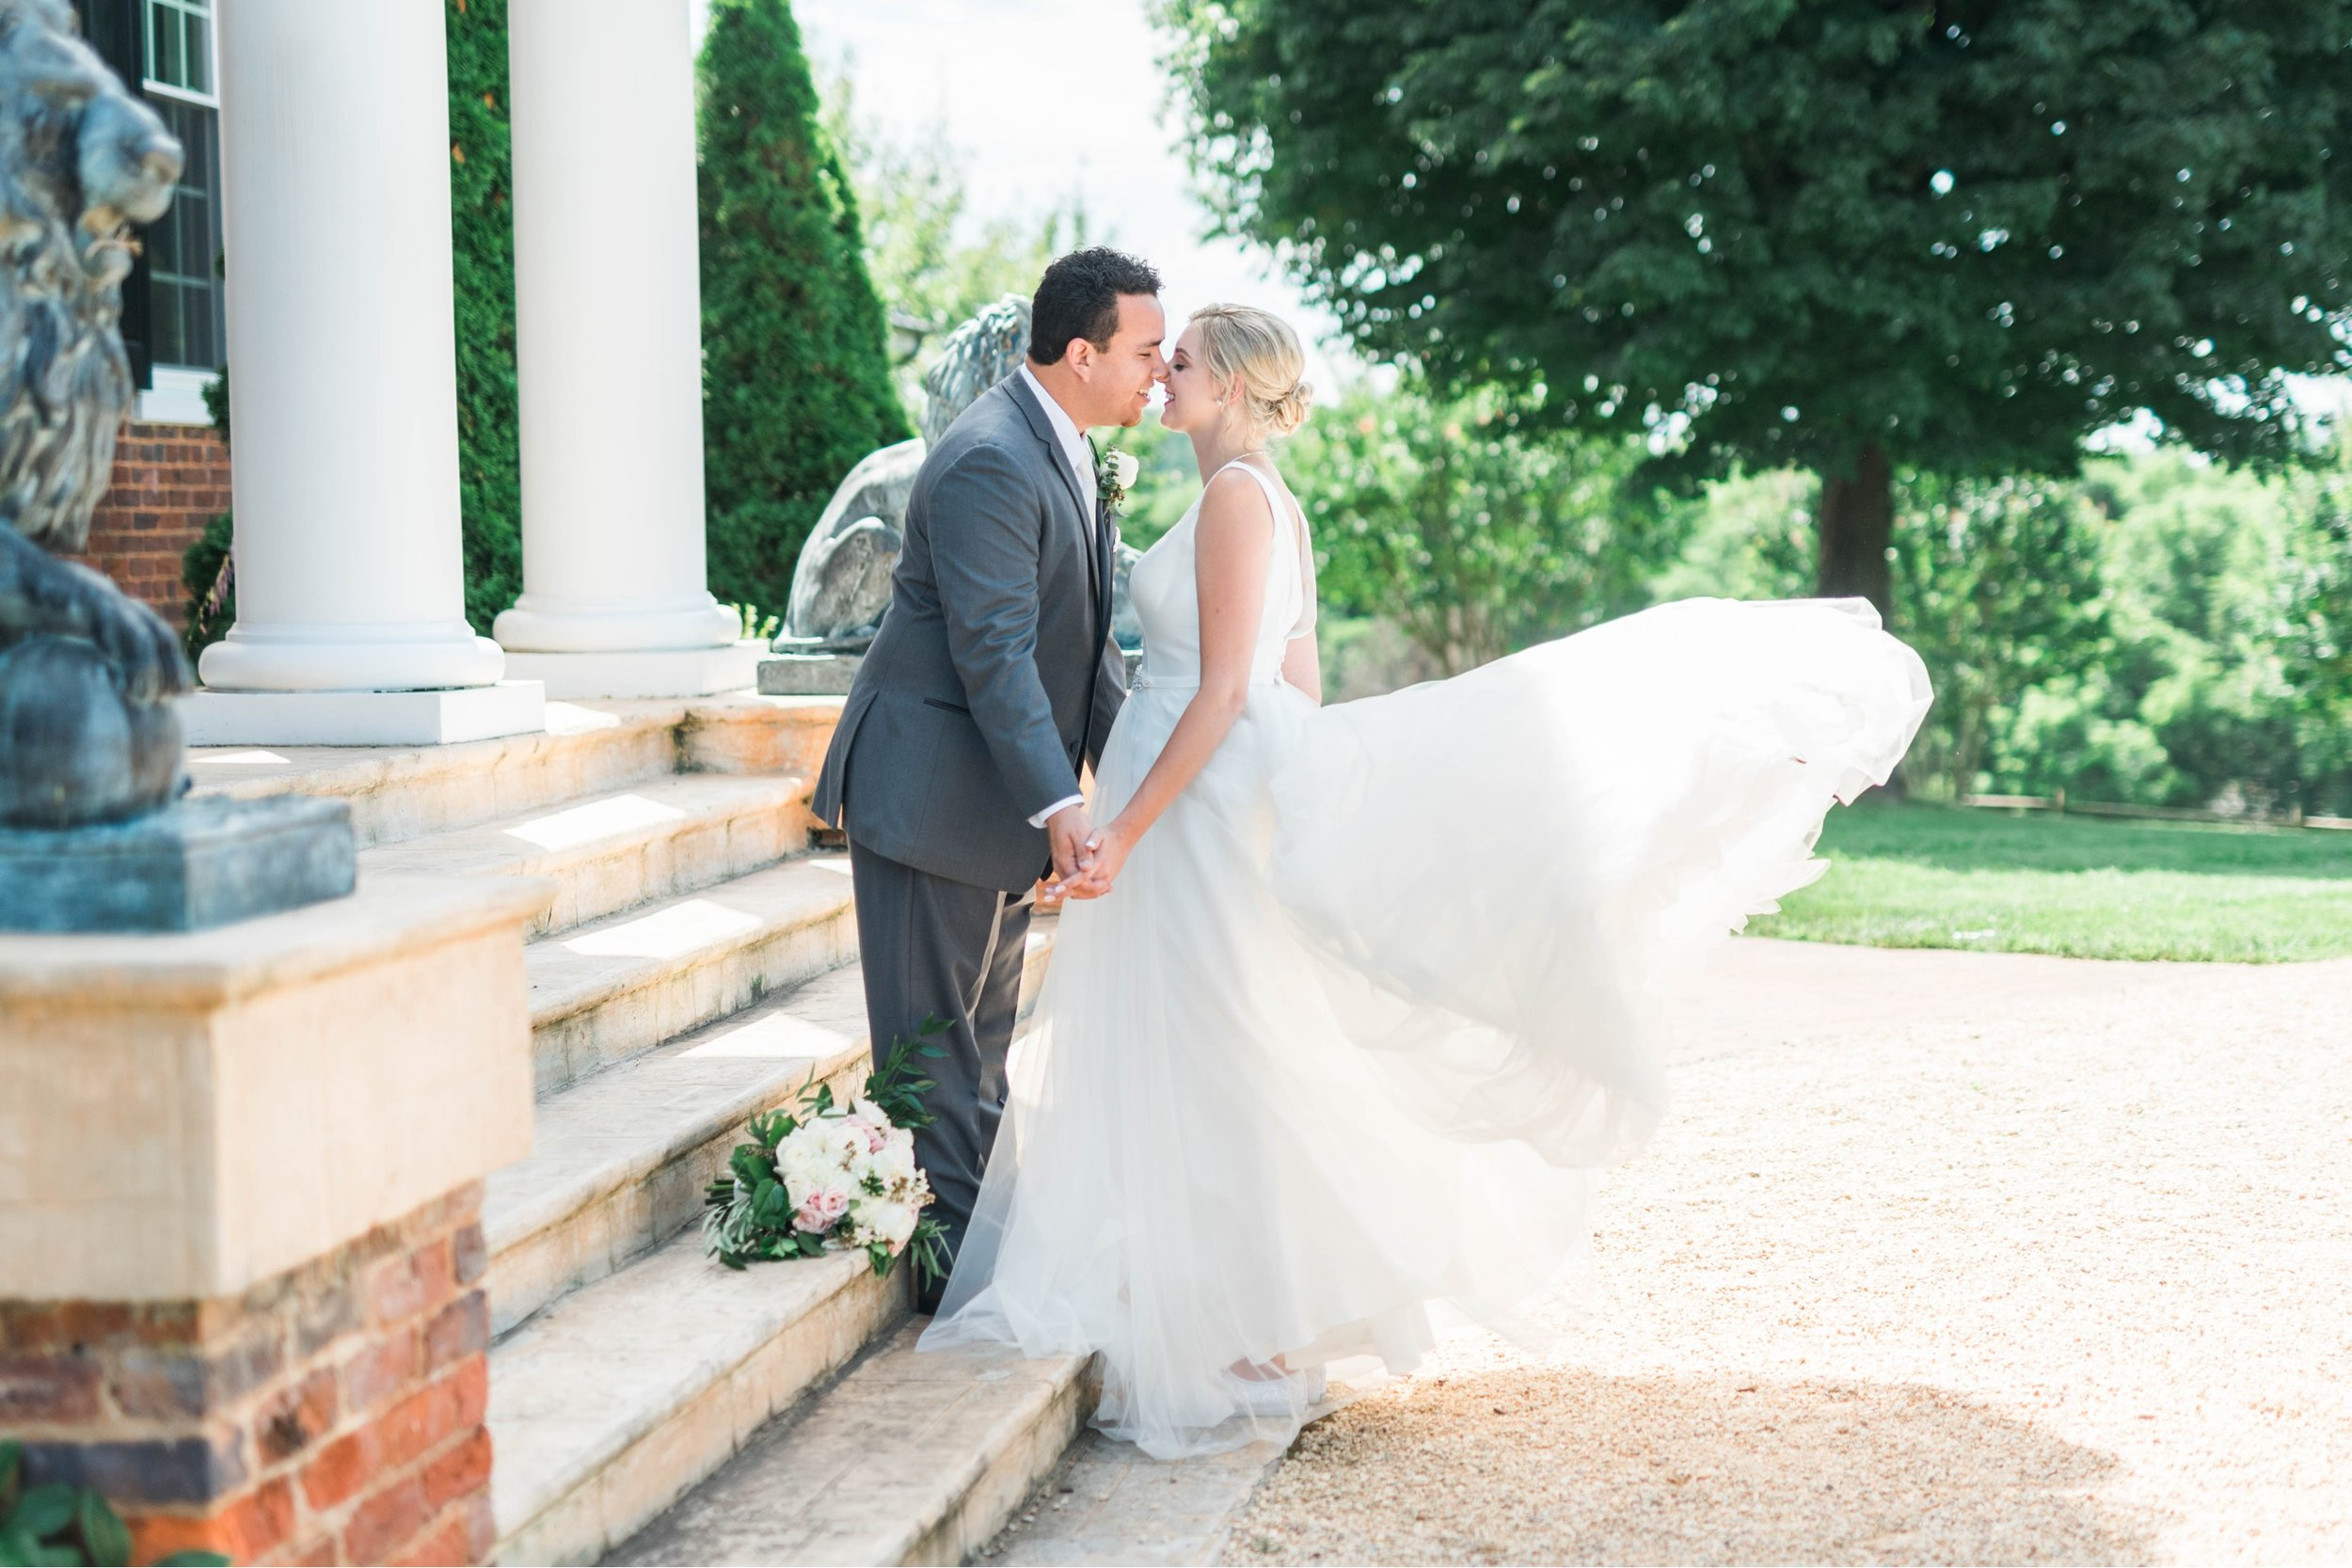 westmanorestate_entwinedevents_lynchburgweddingphotographer_Virginiaweddingphotographer_kateyam 7.jpg